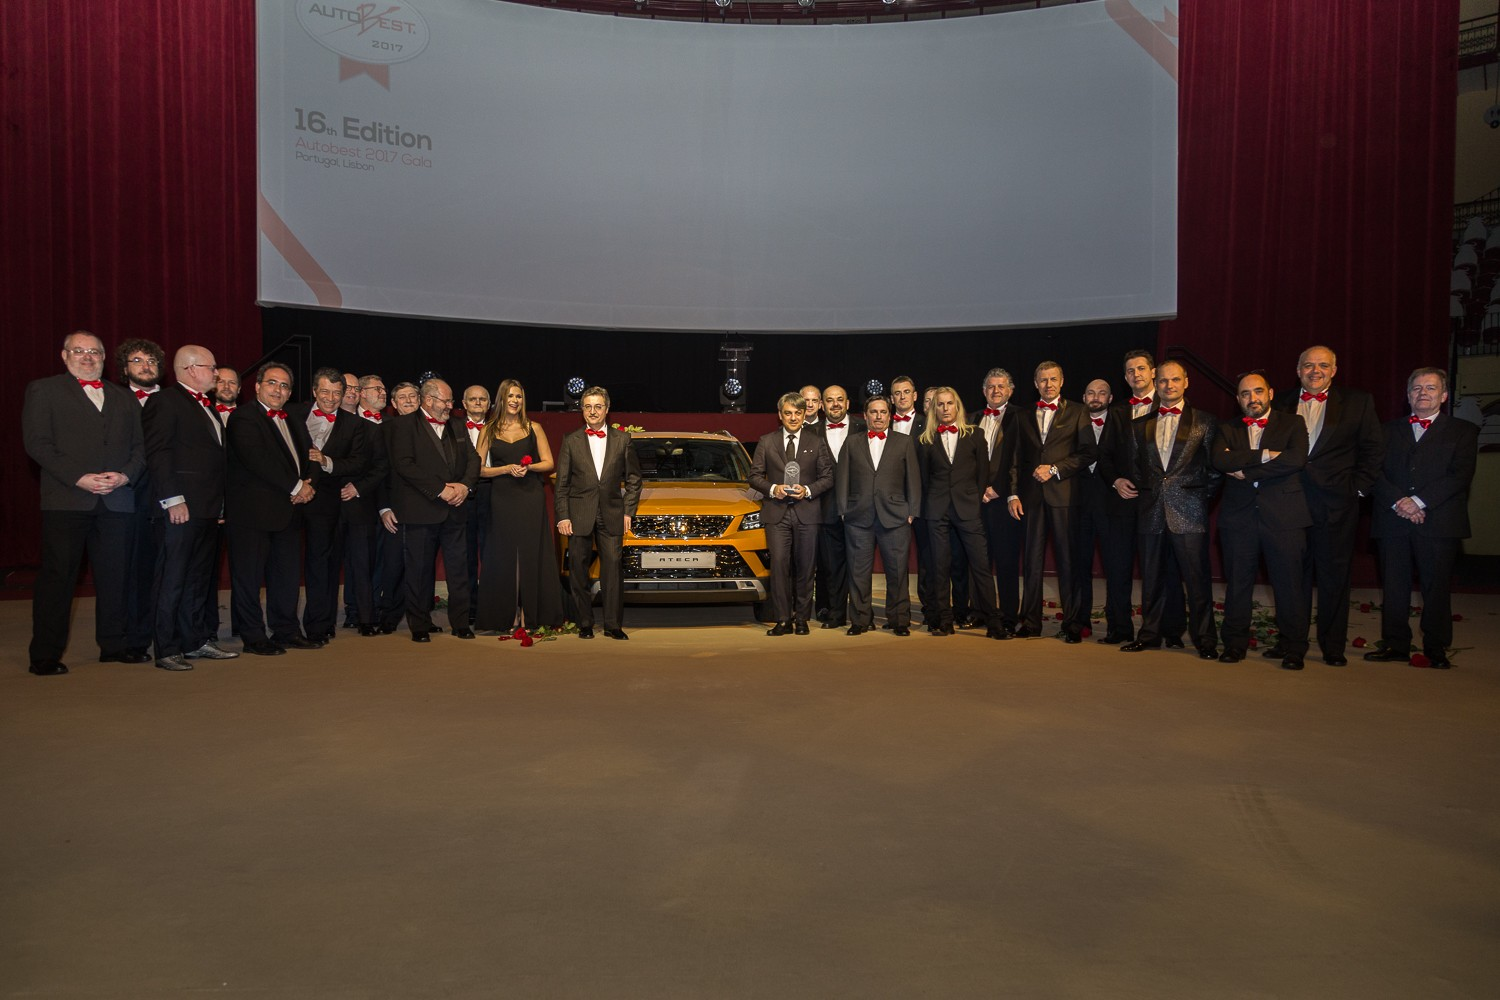 SEAT Ateca krijgt AUTOBEST 'Best Buy Car of Europe' award uitgereikt